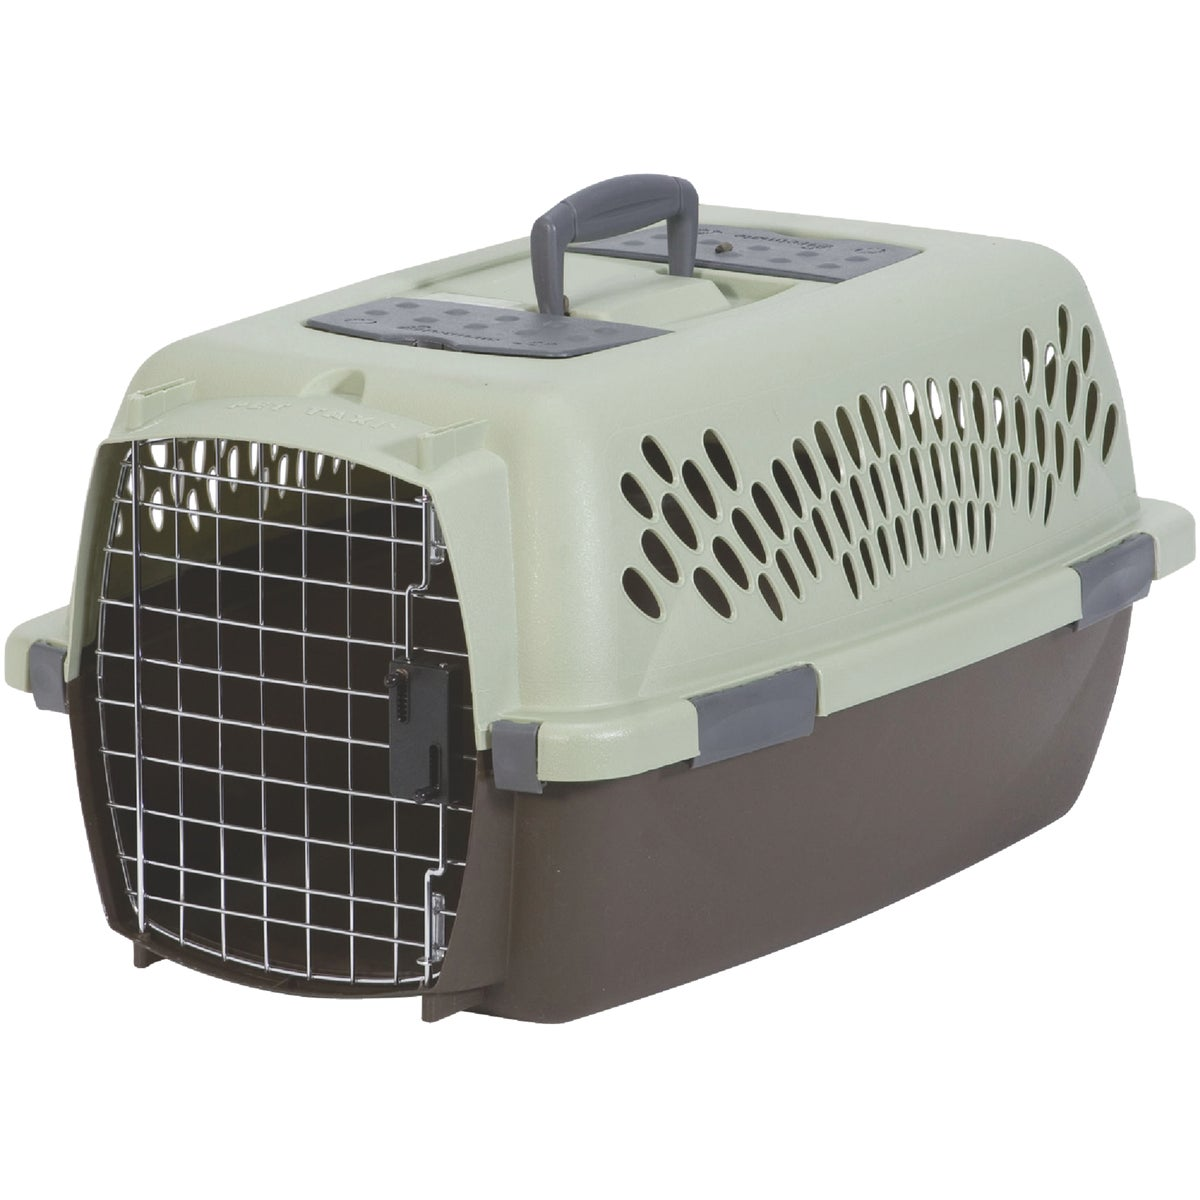 INTRMED PET TAXI KENNEL - 21089 by Petmate Doskocil